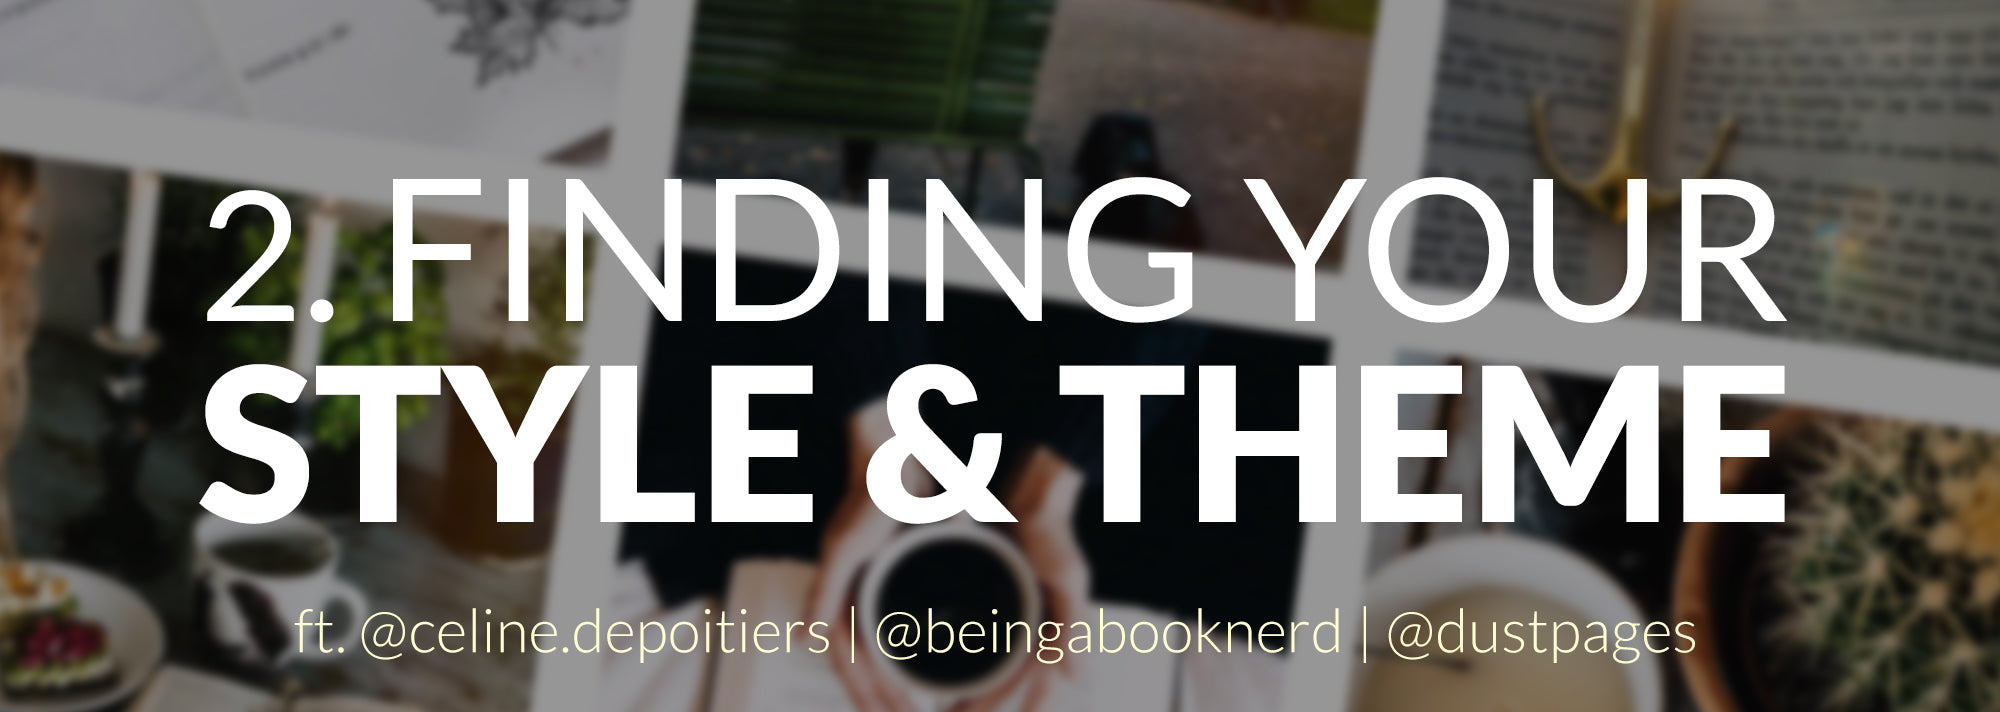 bookstagram title - finding your style & theme